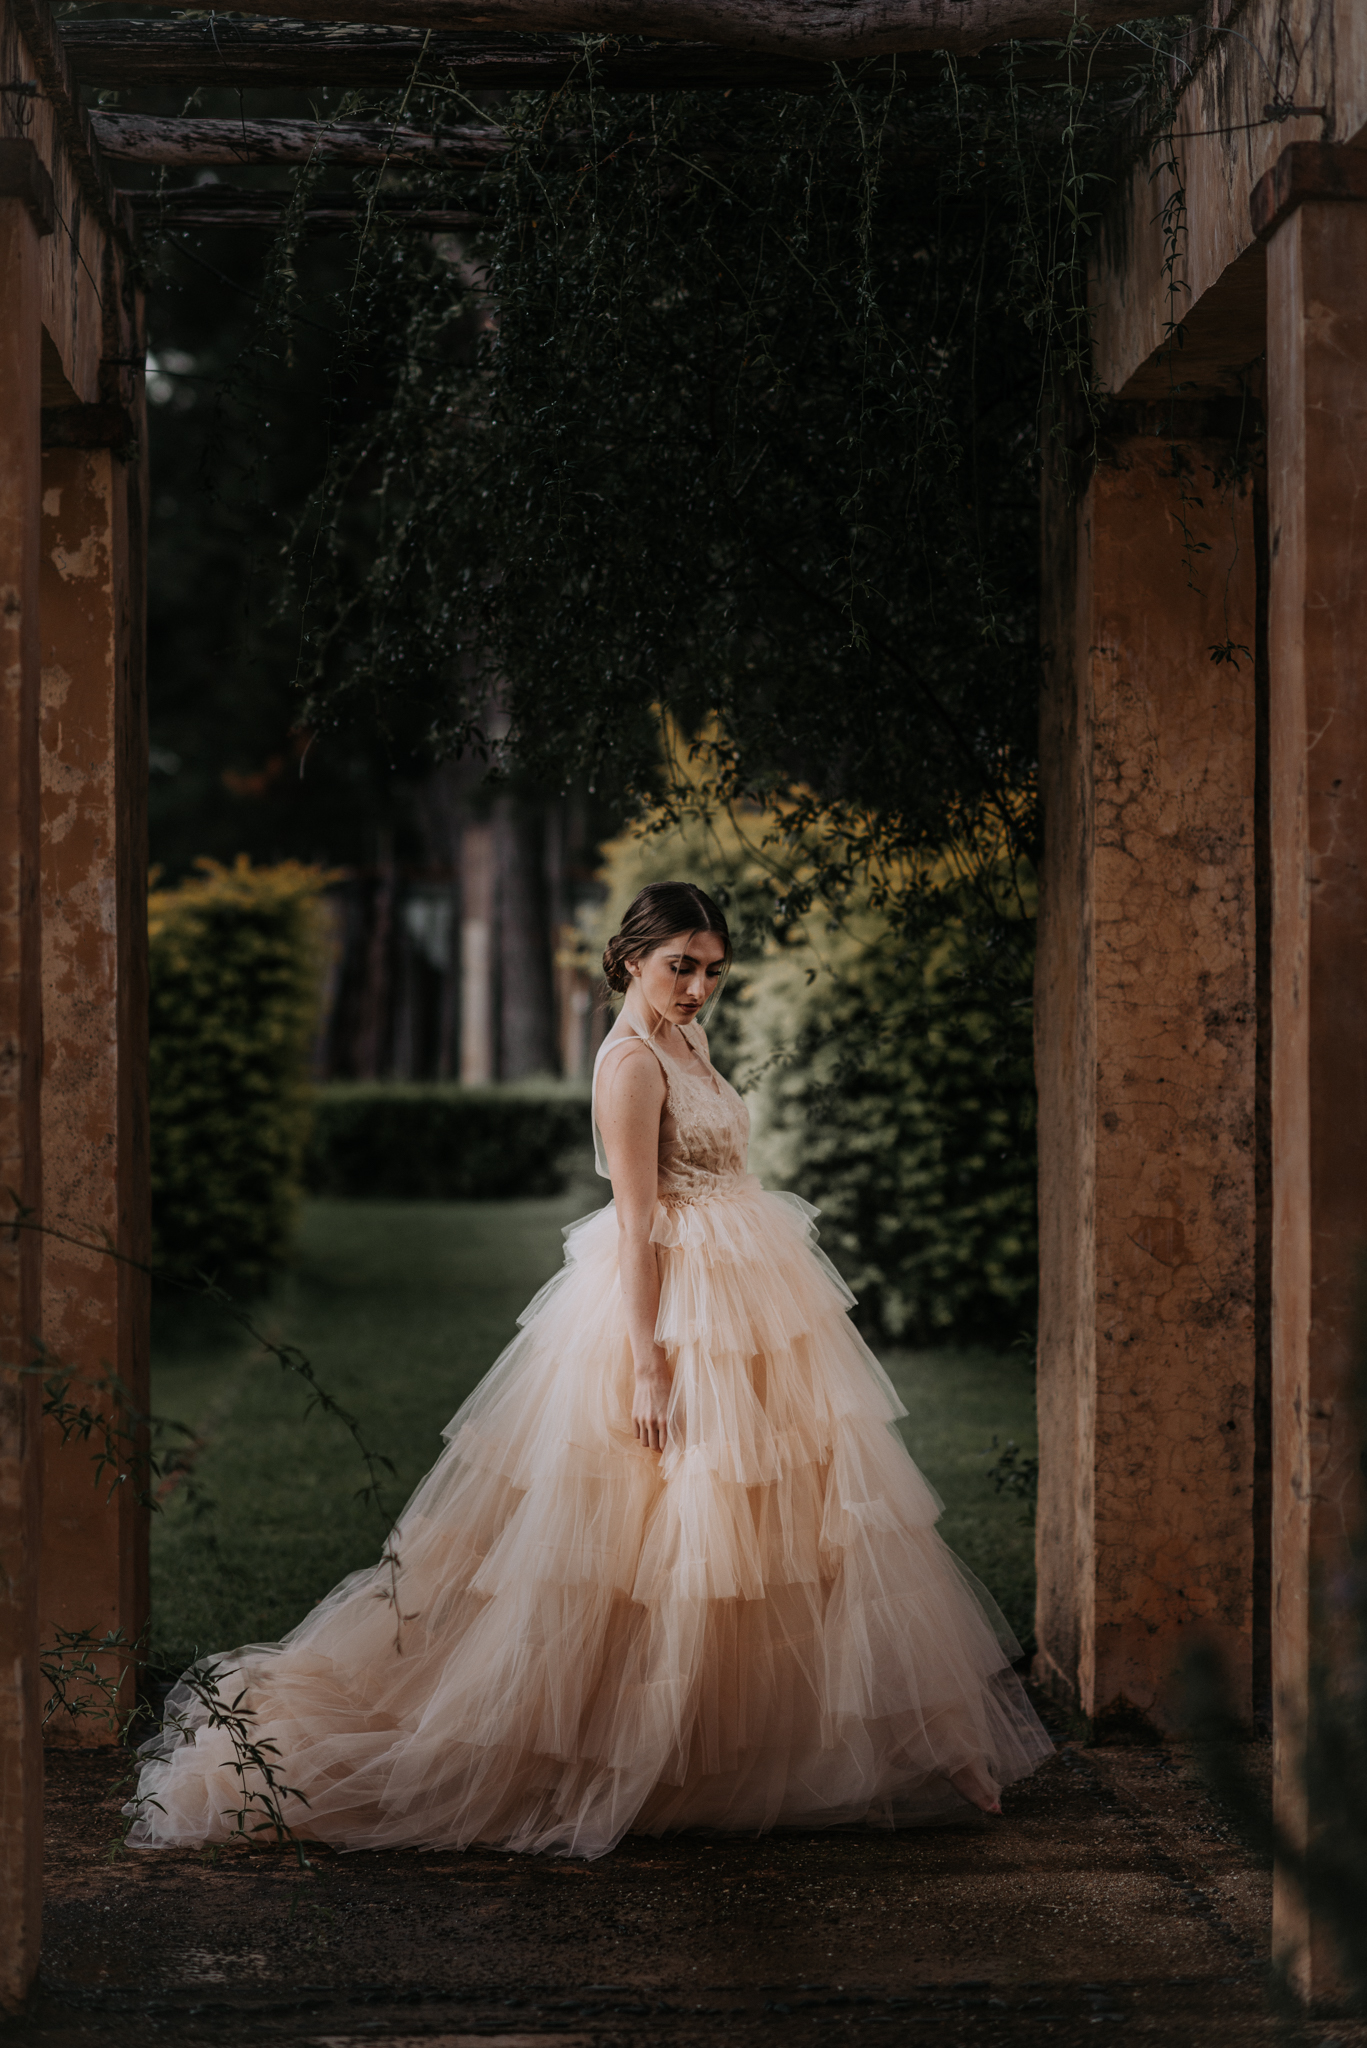 Lovelenscapes Photography X Ulyana Aster Bridal • Les Deux Belettes • Leigh McCoy • Bloodwood Botanica • Alena Iano • Alisa Rudnev • Demi Groot • Jessie Lockley • Maddison Ruby • 154.jpg